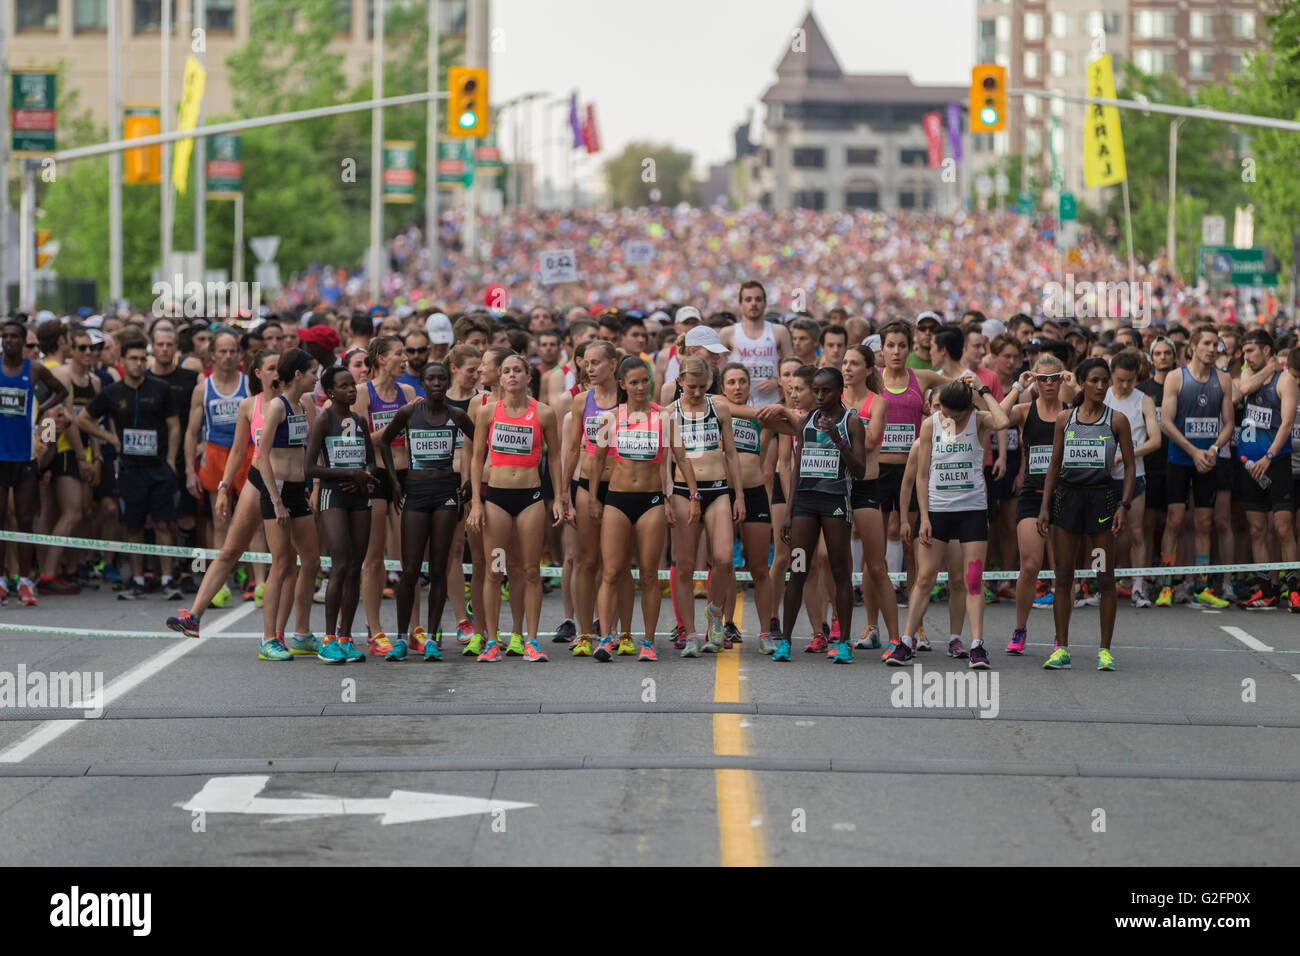 Ottawa Race Weekend - Stock Image